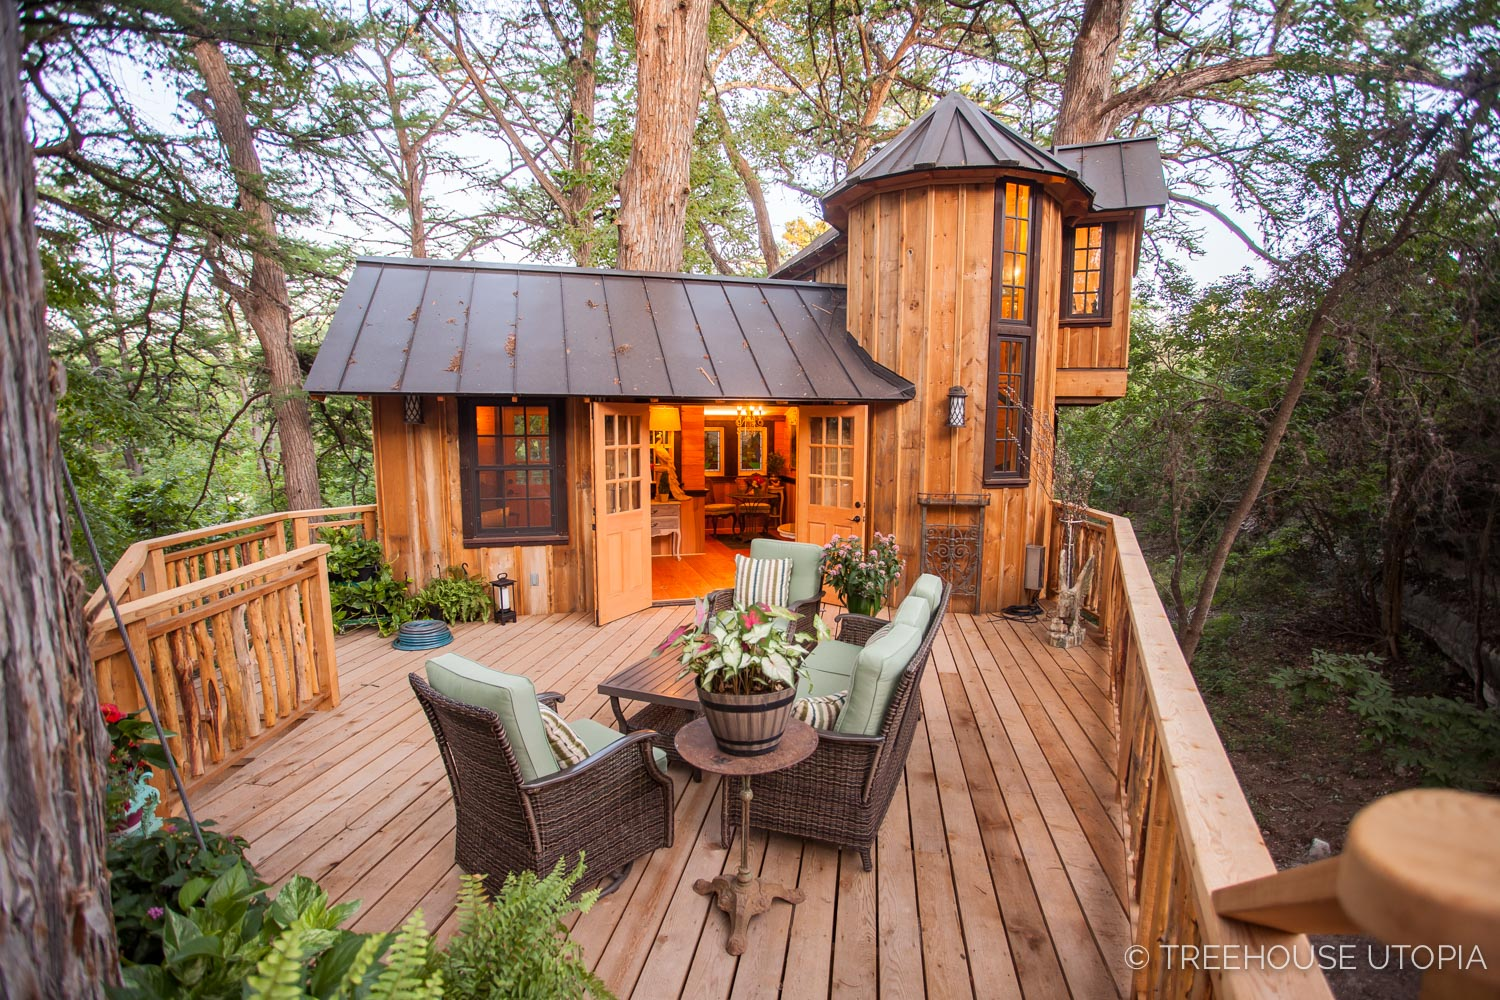 Deck to Chateau at Treehouse Utopia